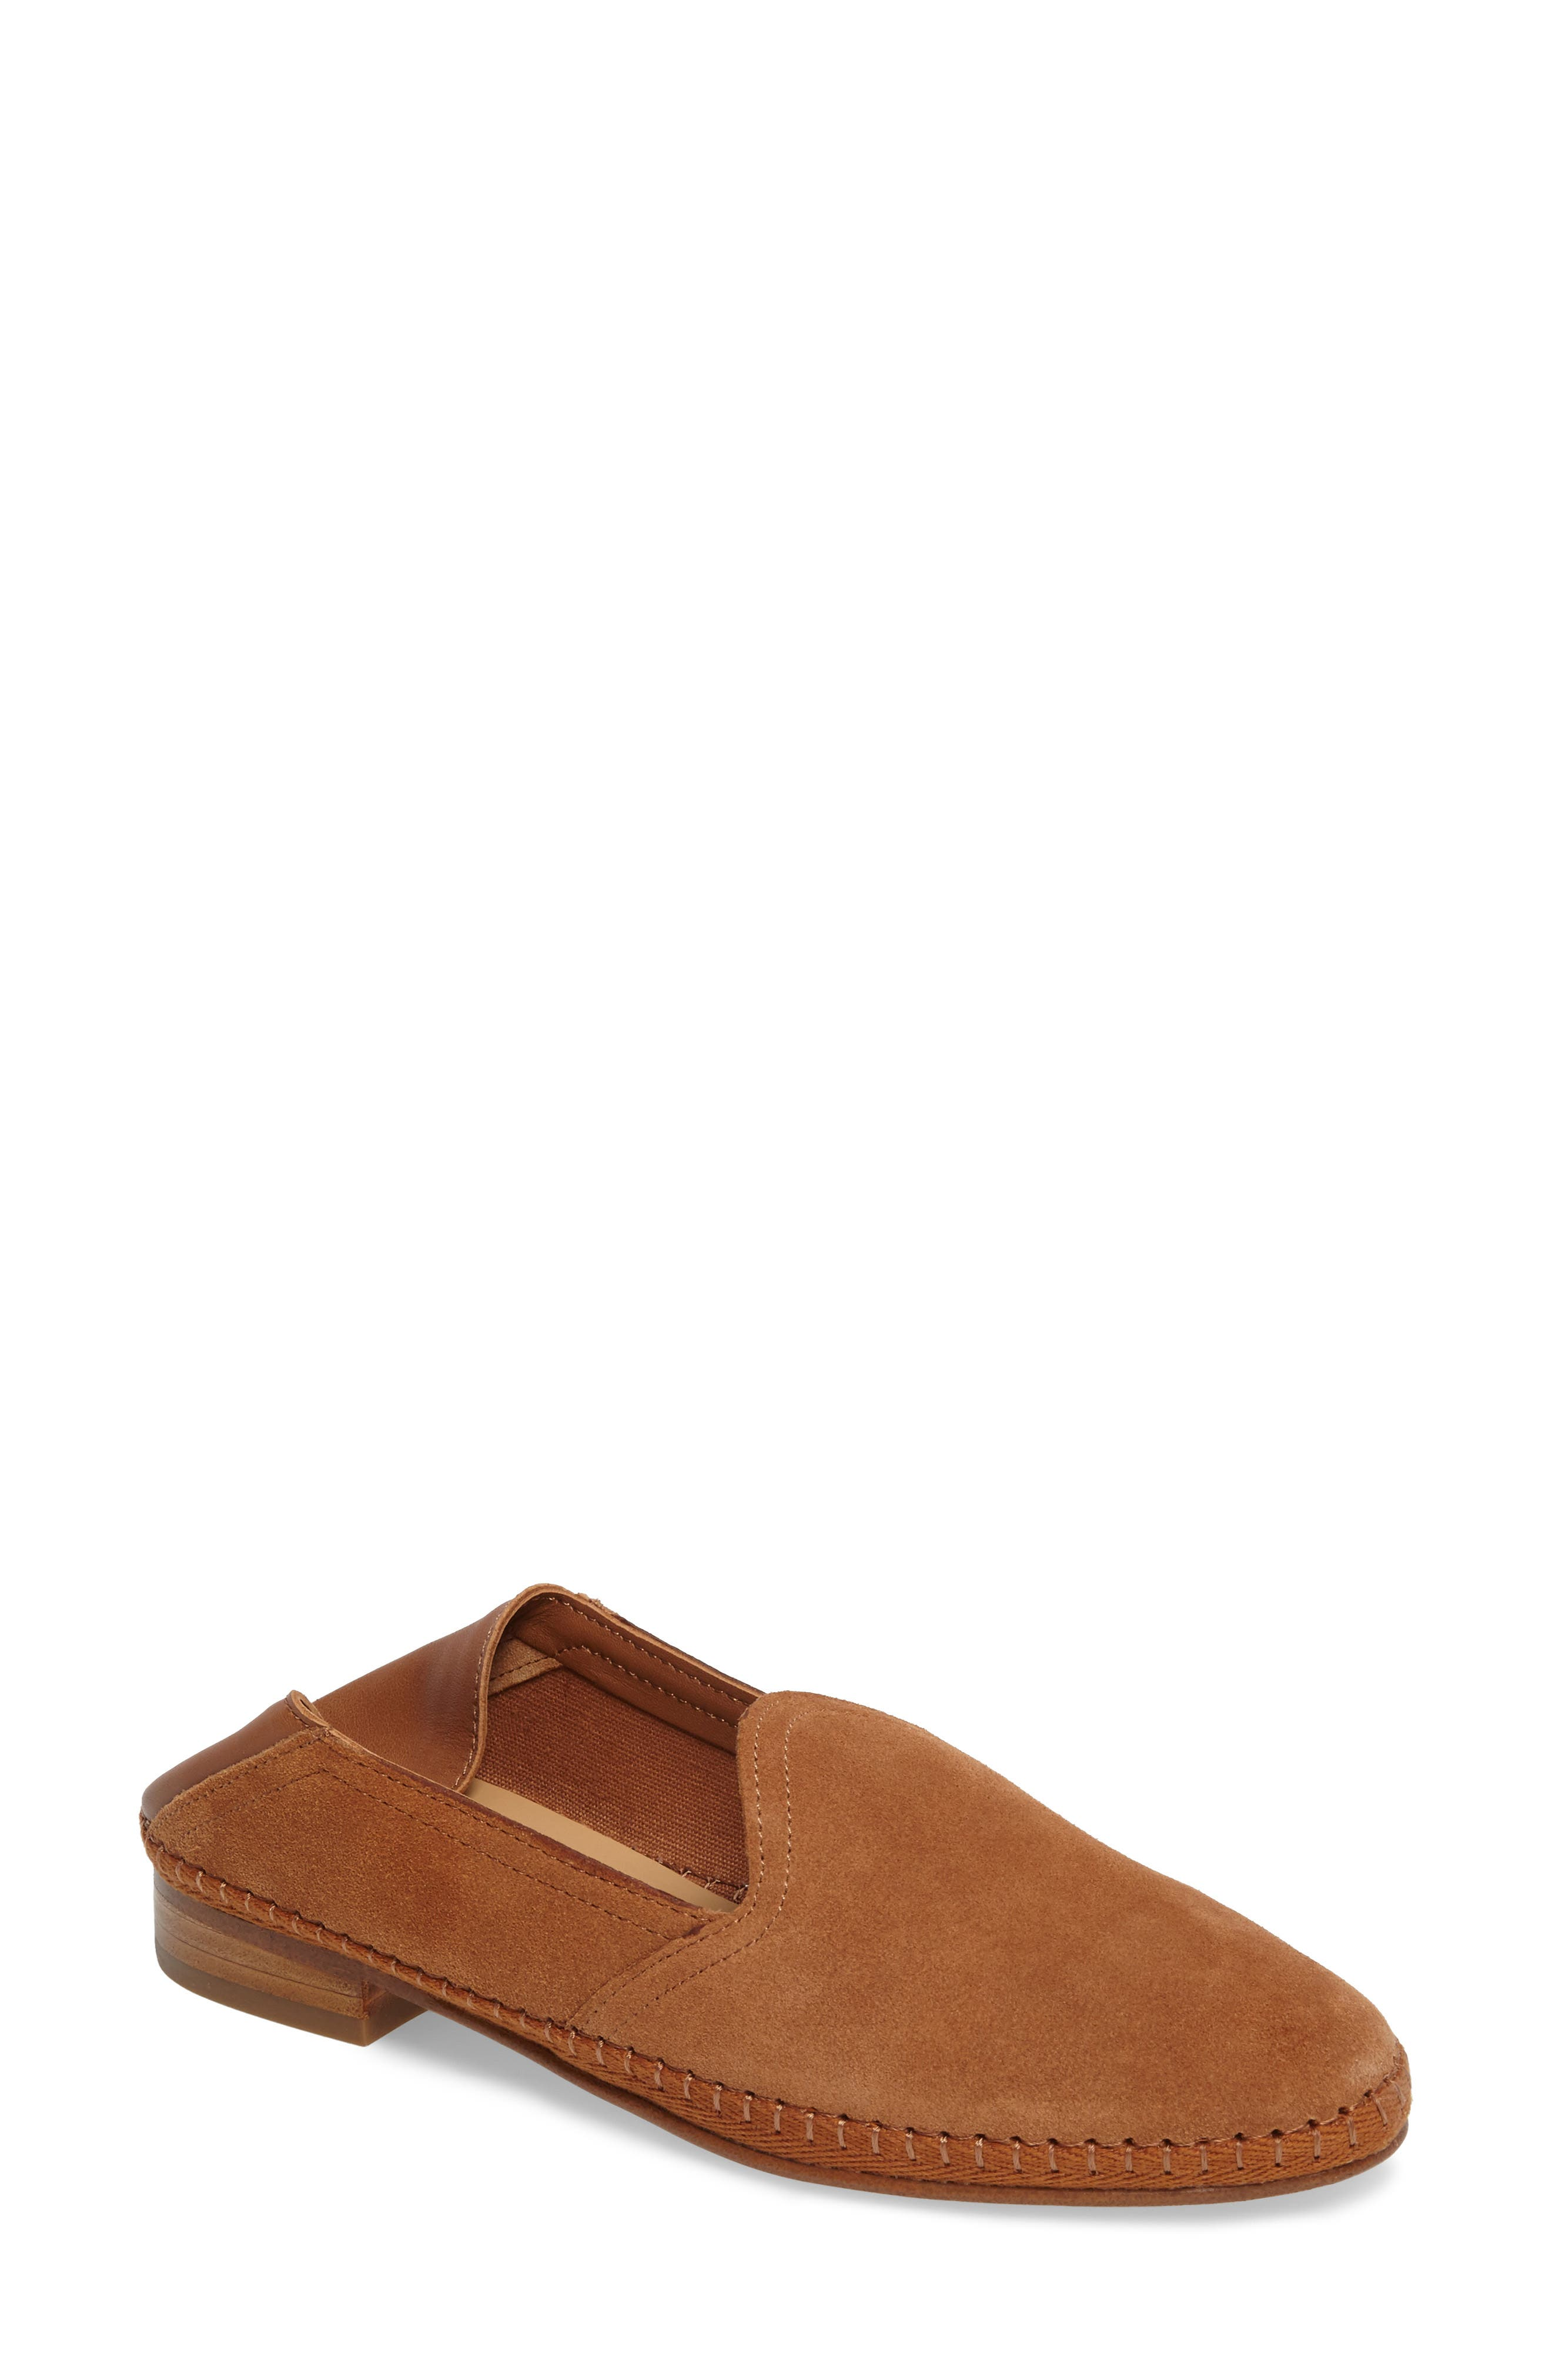 Alternate Image 1 Selected - Soludus Convertible Venetian Loafer (Women)